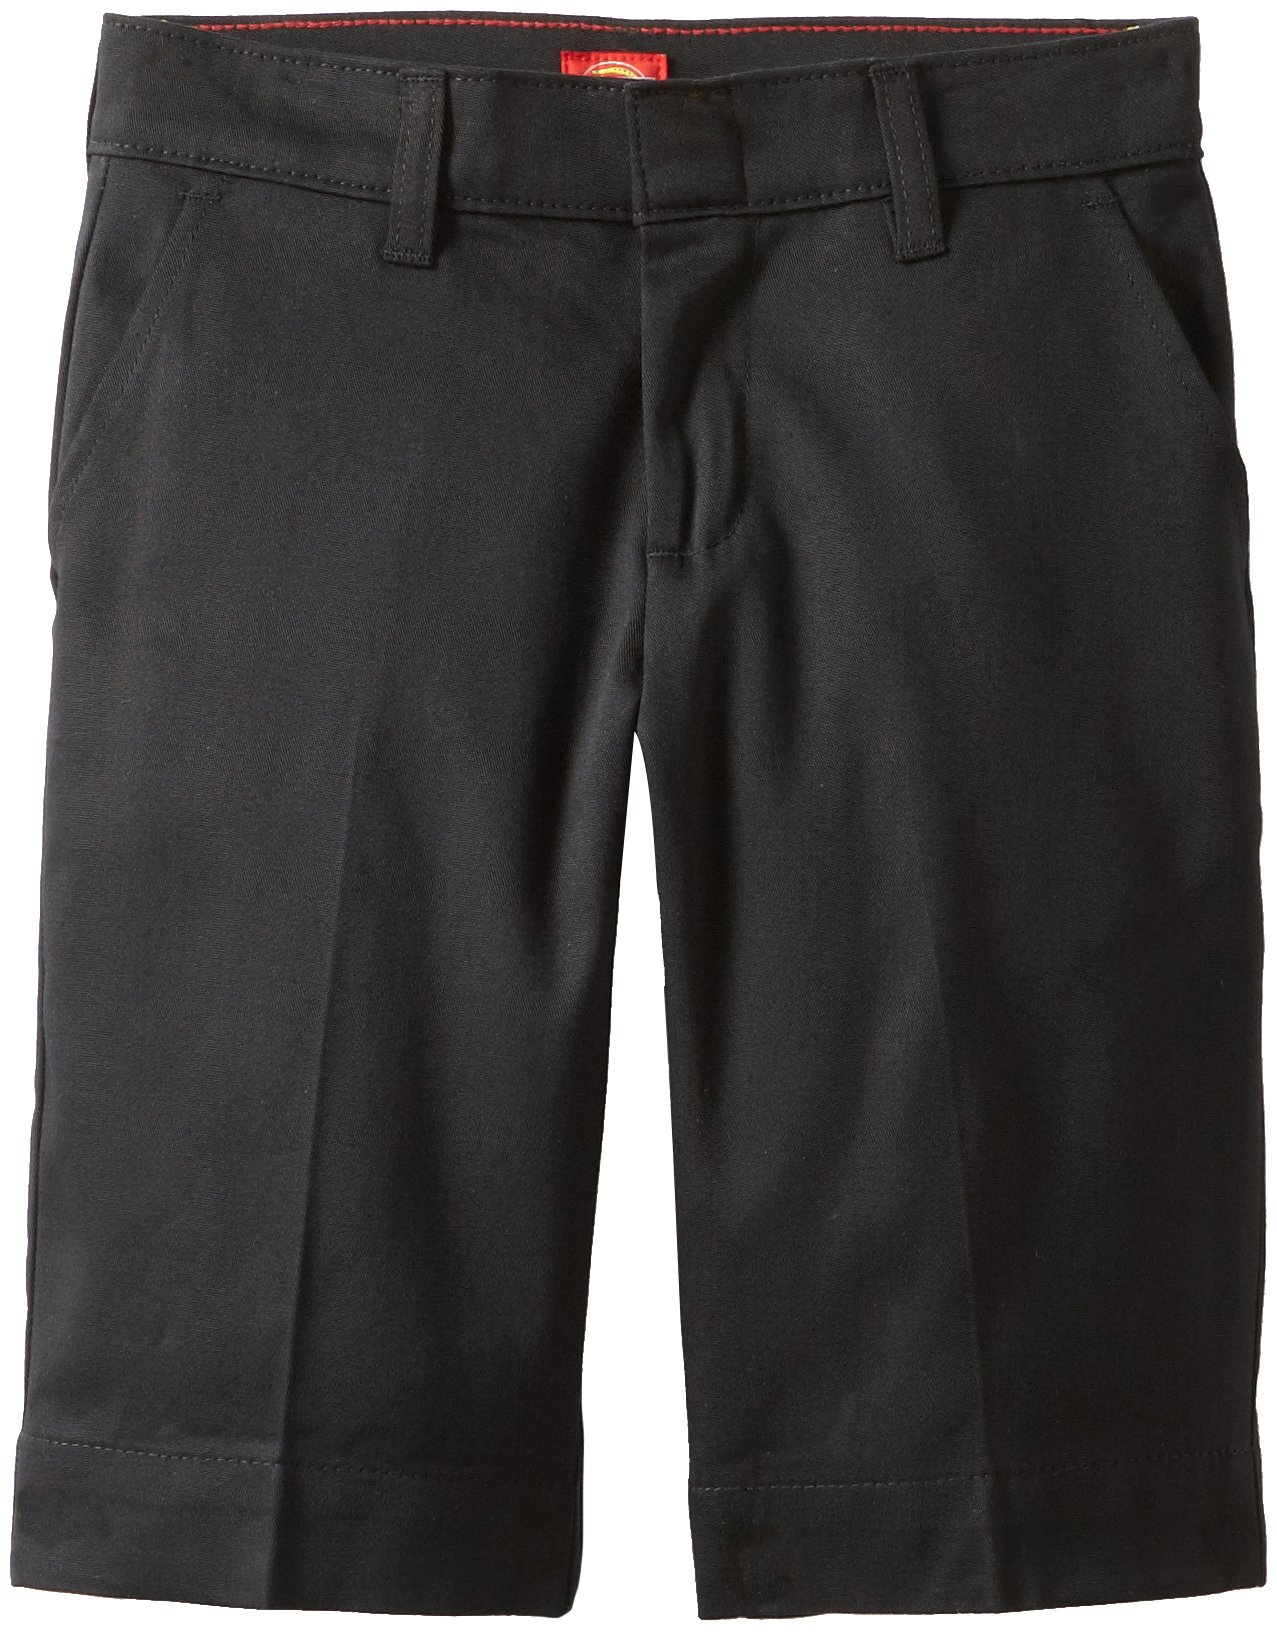 Dickies Big Girls' Stretch Bermuda Short, Black, 16